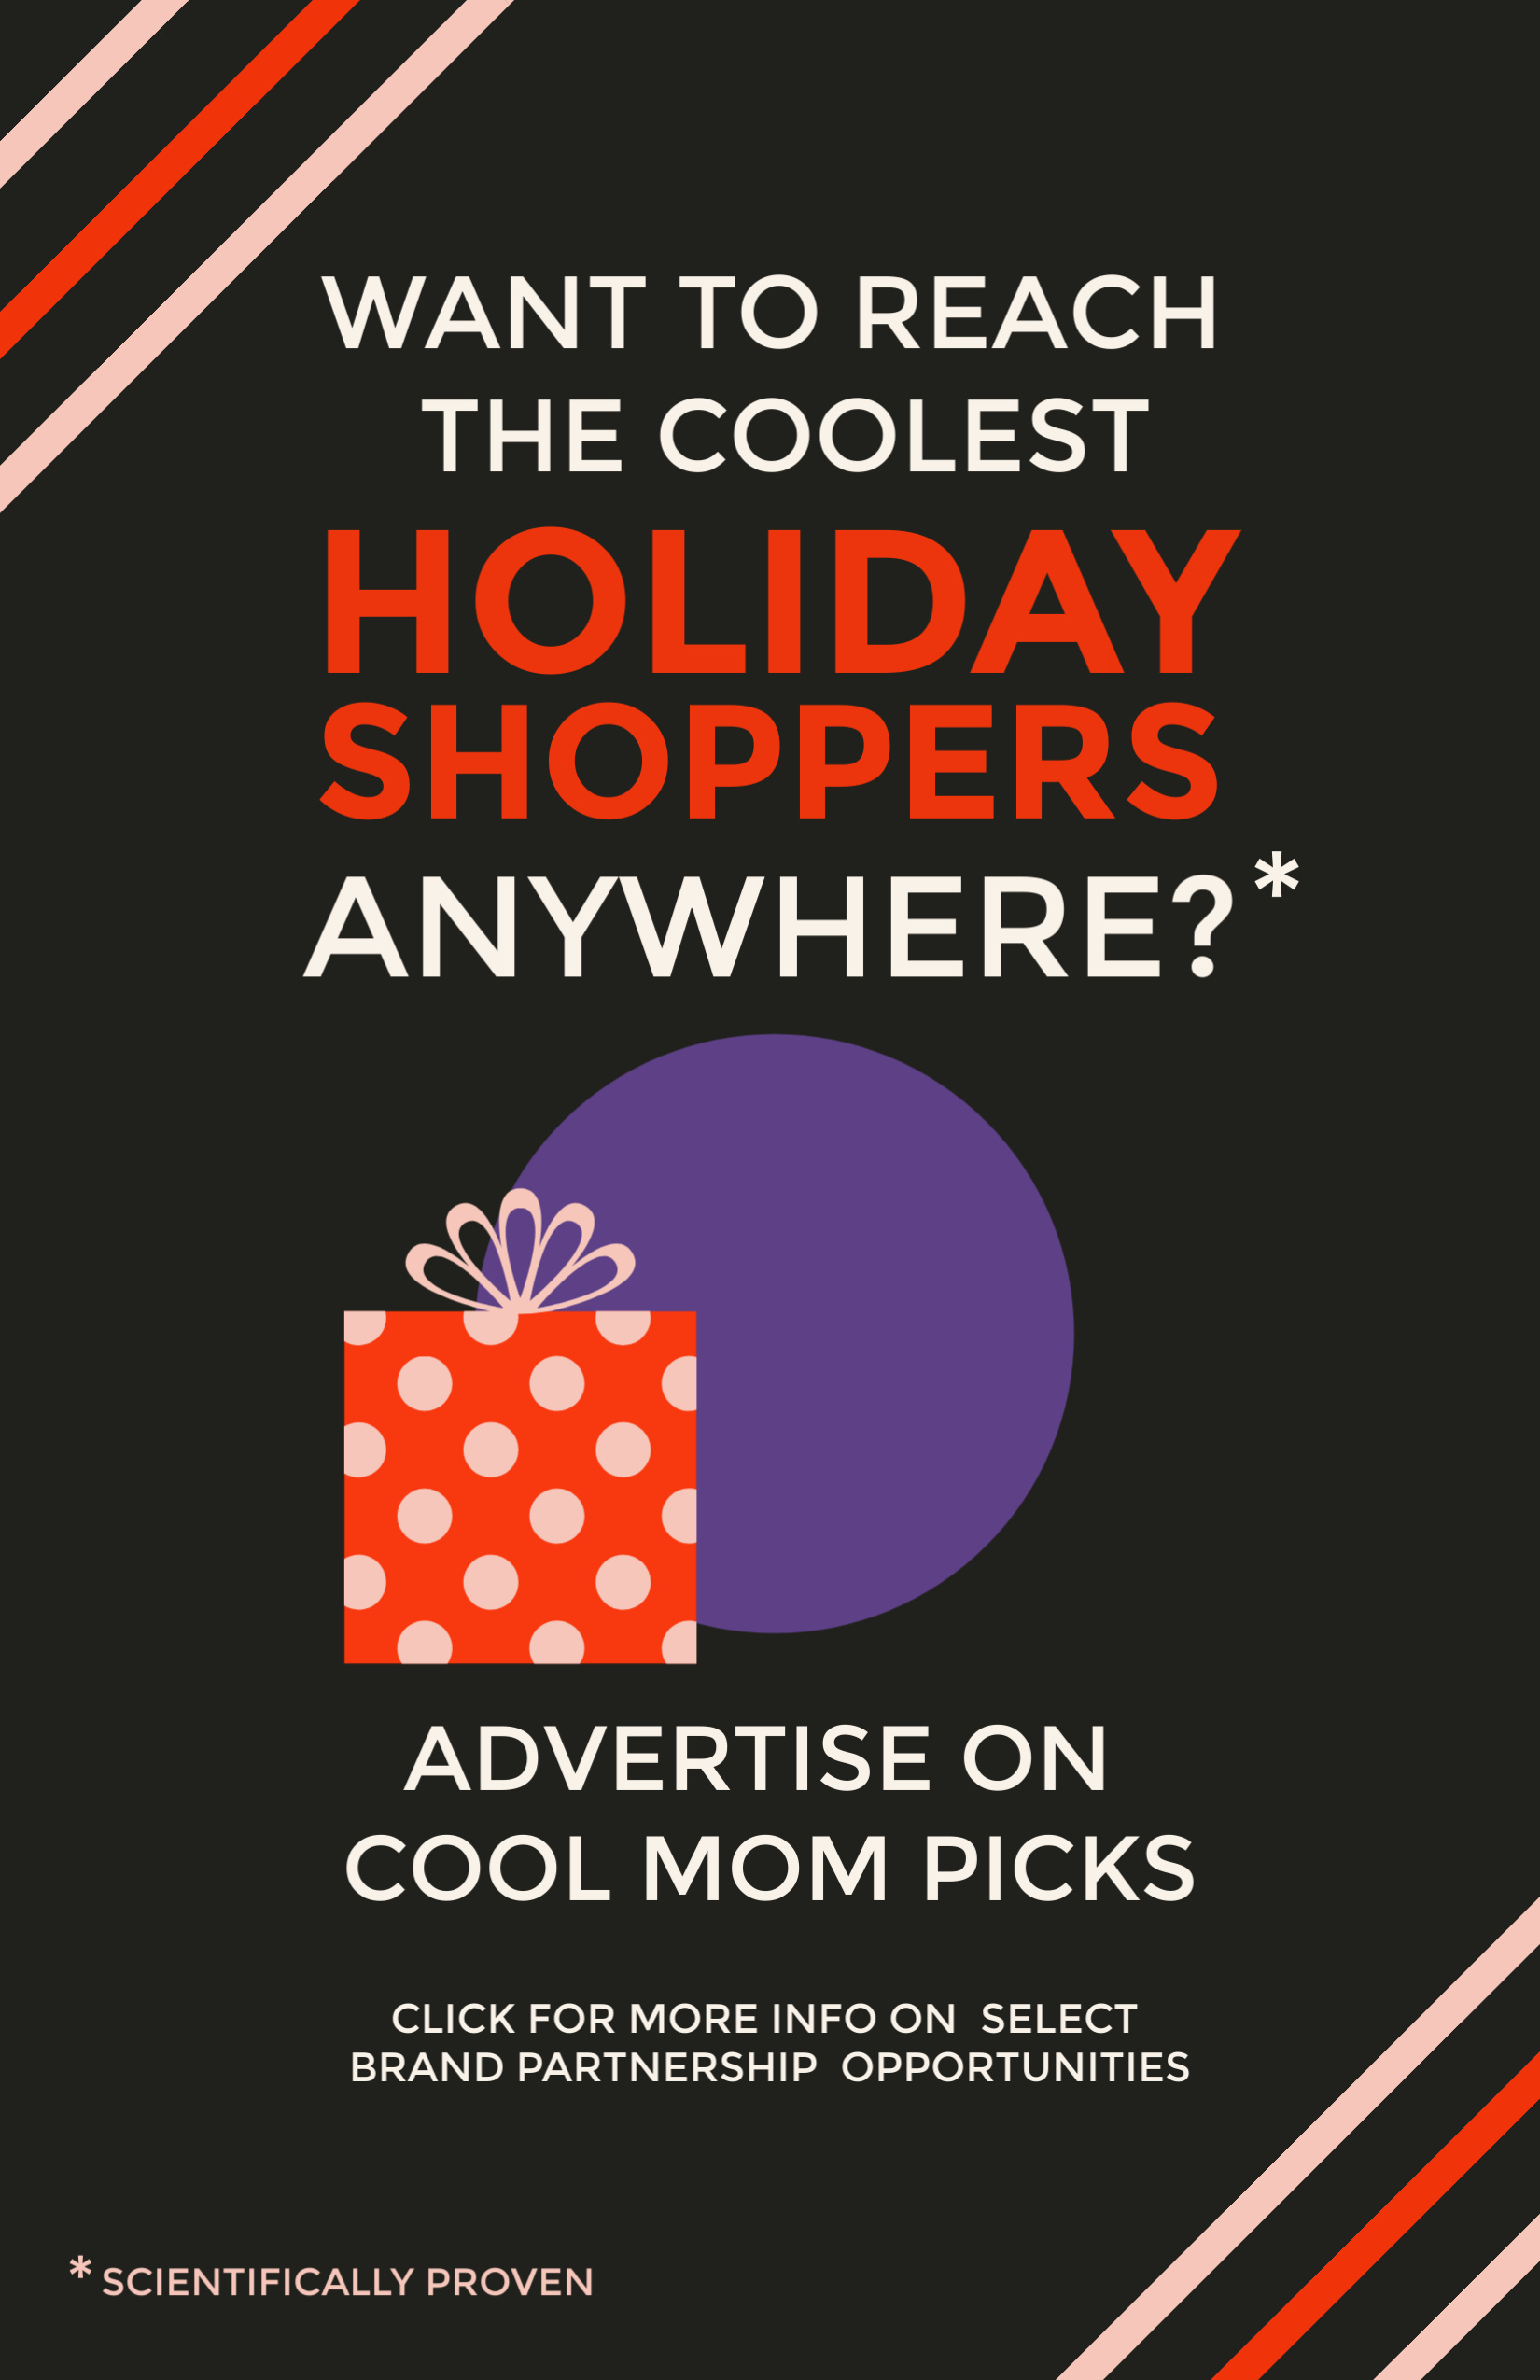 Holiday ad opportunities on Cool Mom Picks network